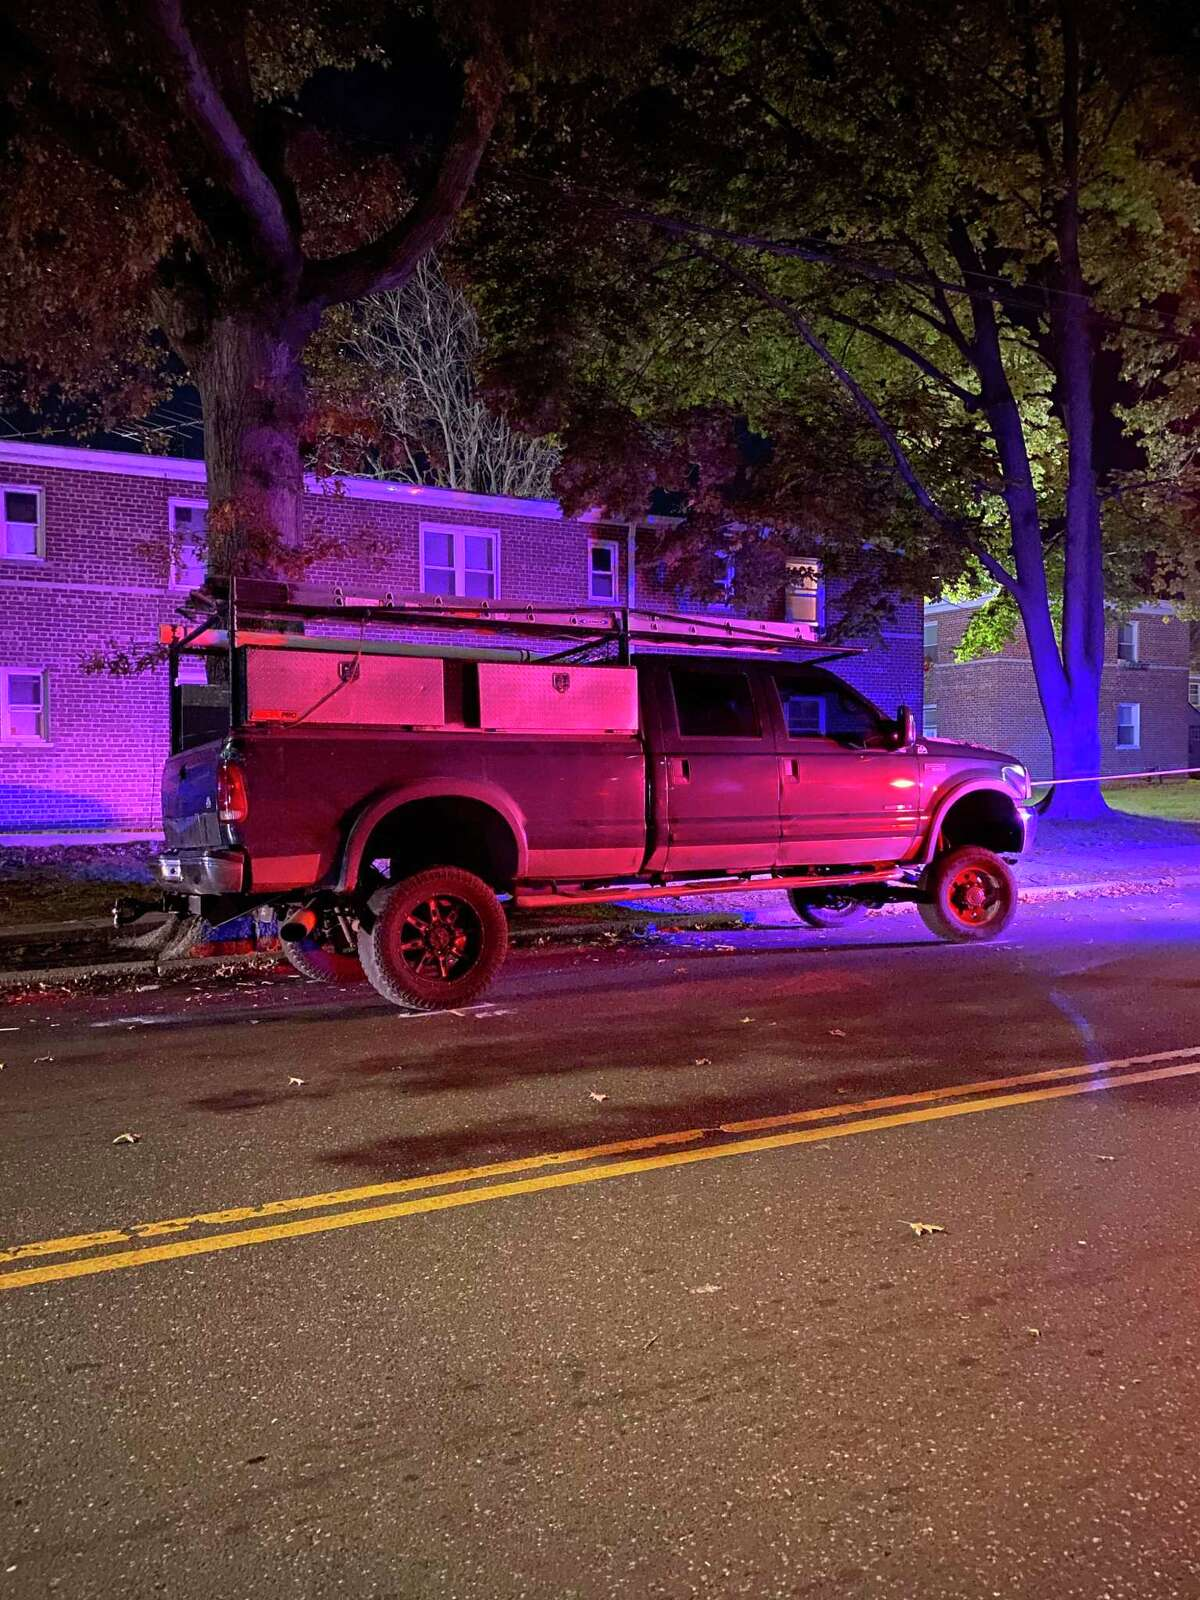 The pickup truck involved in a serious collision involving a pedestrian in Bridgeport, Conn., on Wednesday, Nov. 4, 2020.